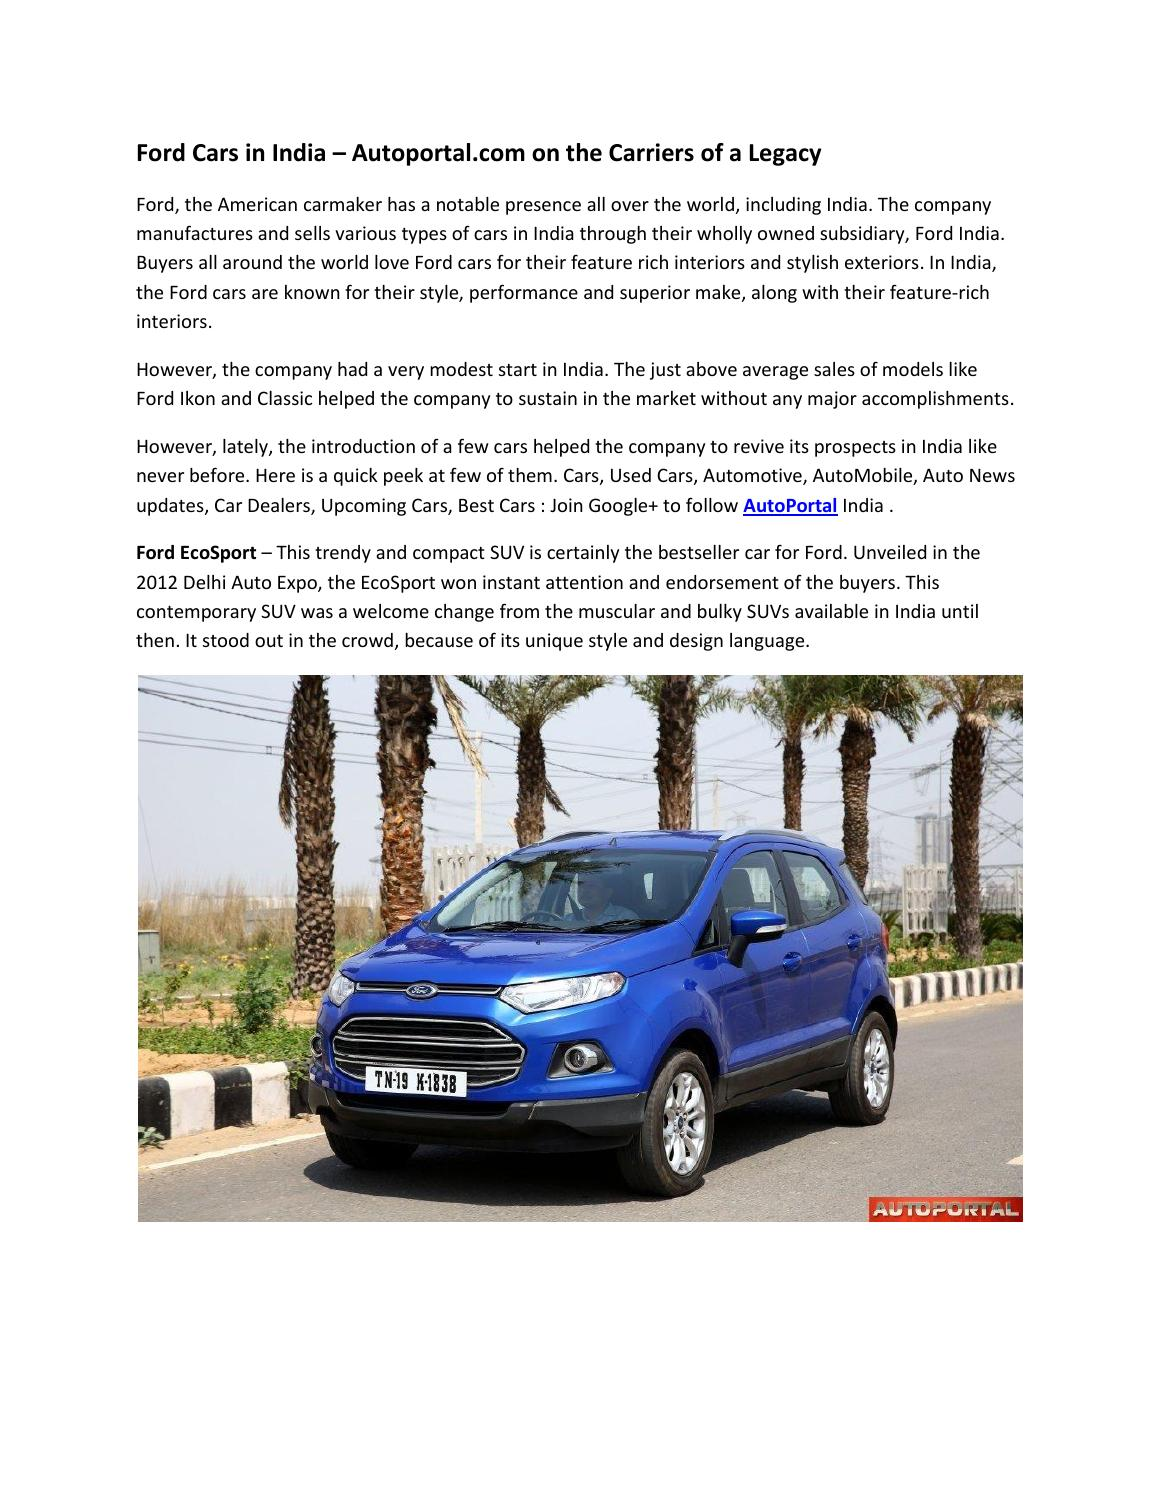 Ford Cars In India Autoportal Com On The Carriers Of A Legacy By